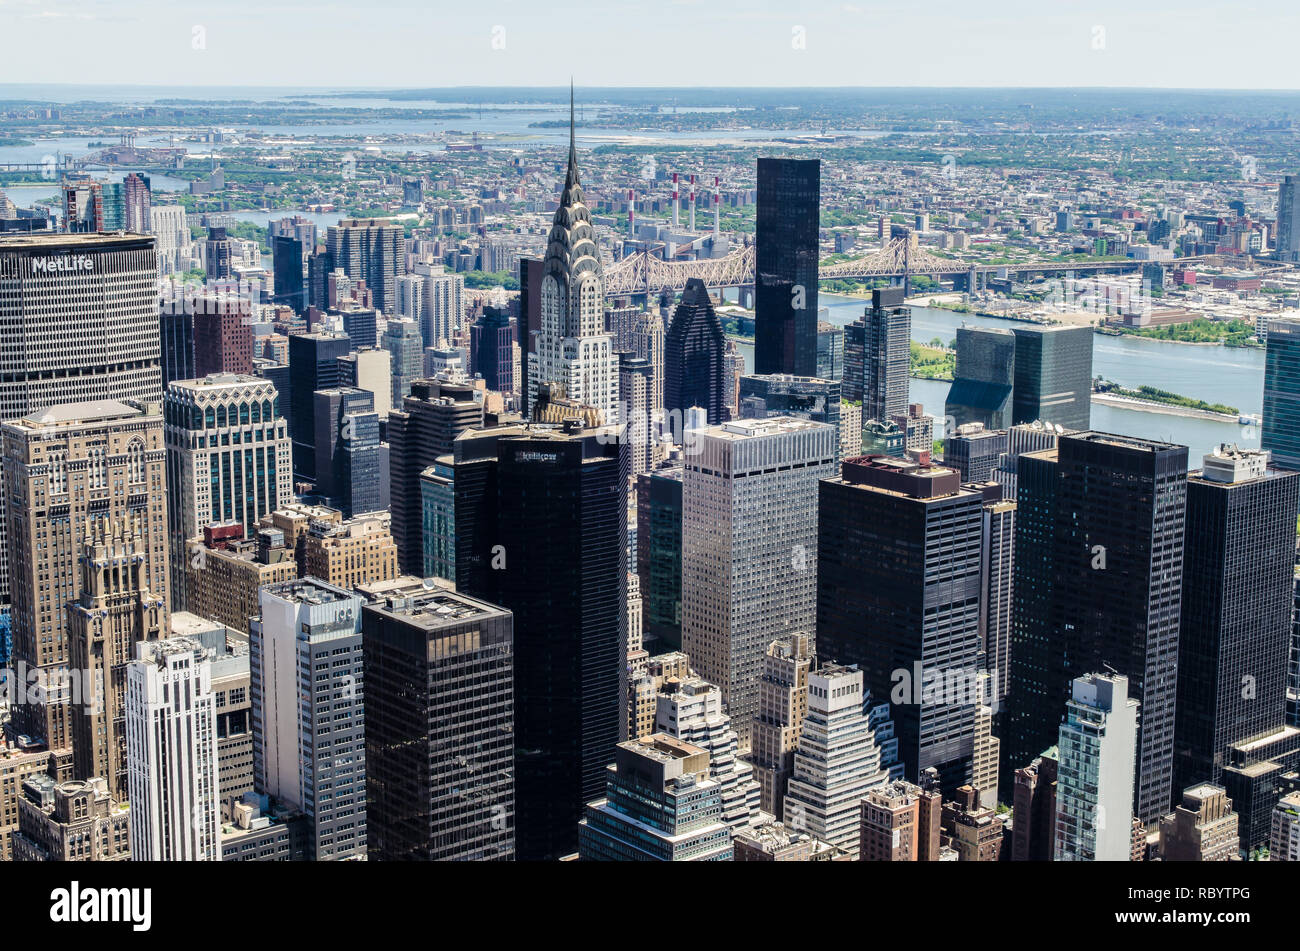 A view of Lower Manhattan skyline from Empire state building on a sunny day in June of 2018  in New York, USA ,2018 - Stock Image